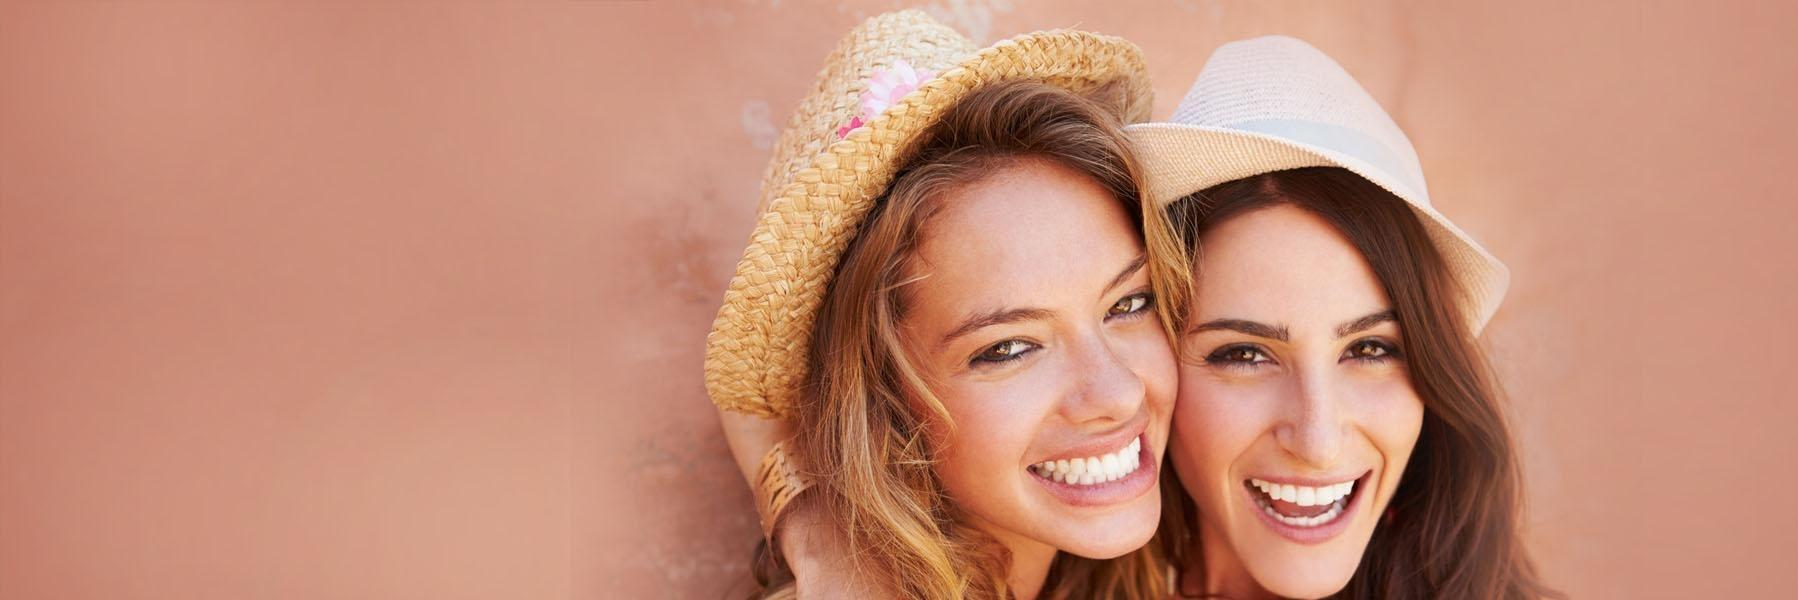 Women with hats smiling